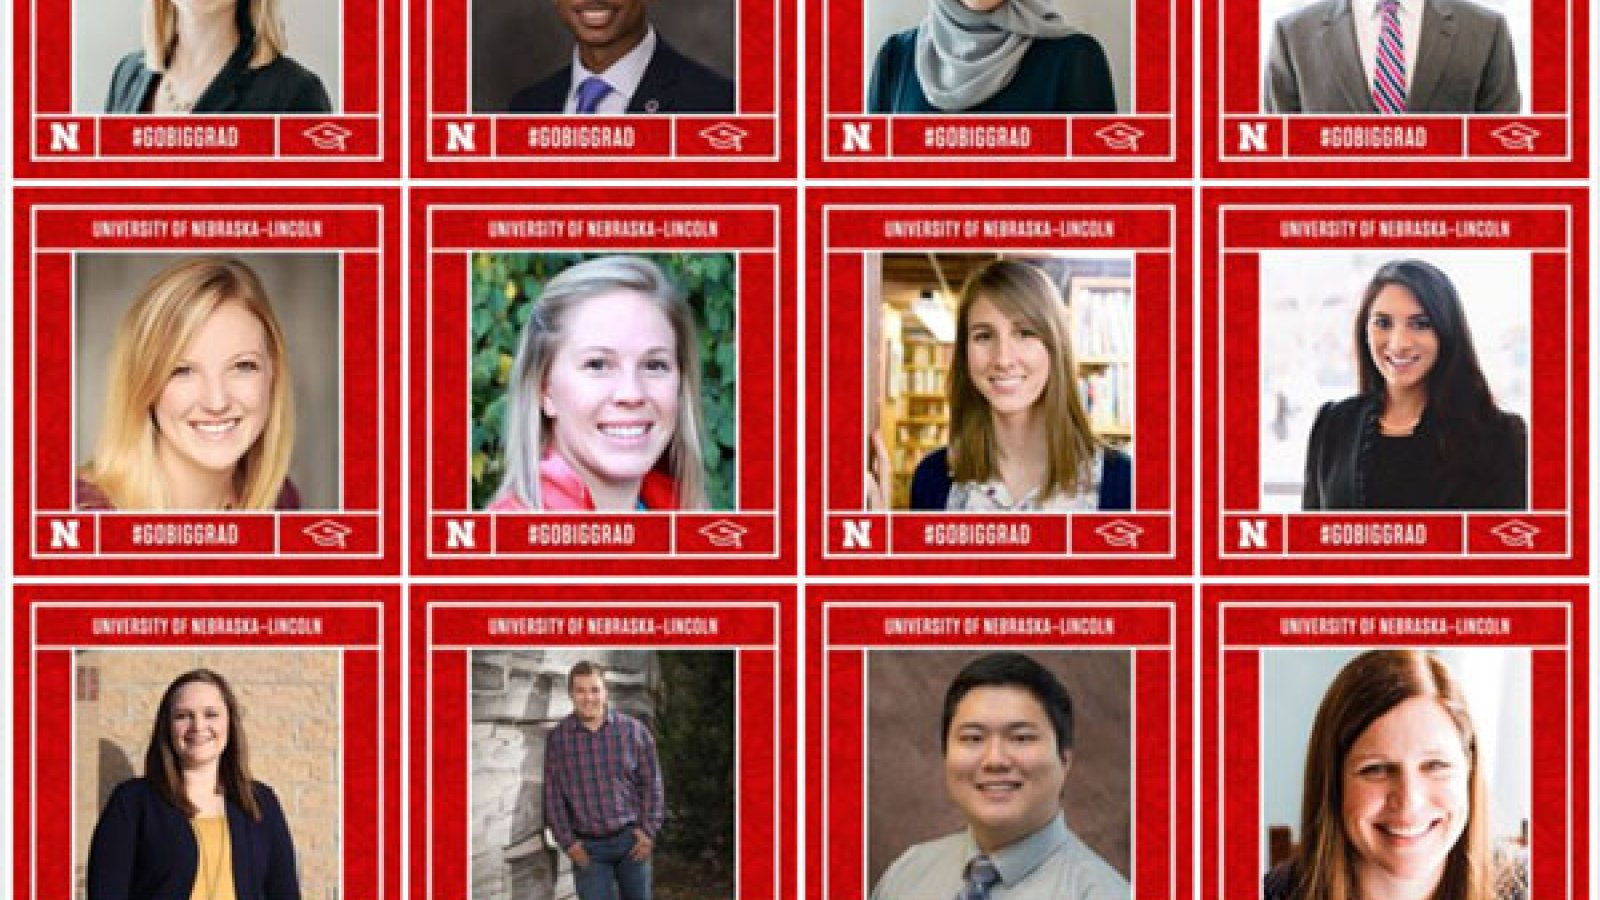 The University of Nebraska-Lincoln has featured 50 of its fall graduates on the university's Facebook page.